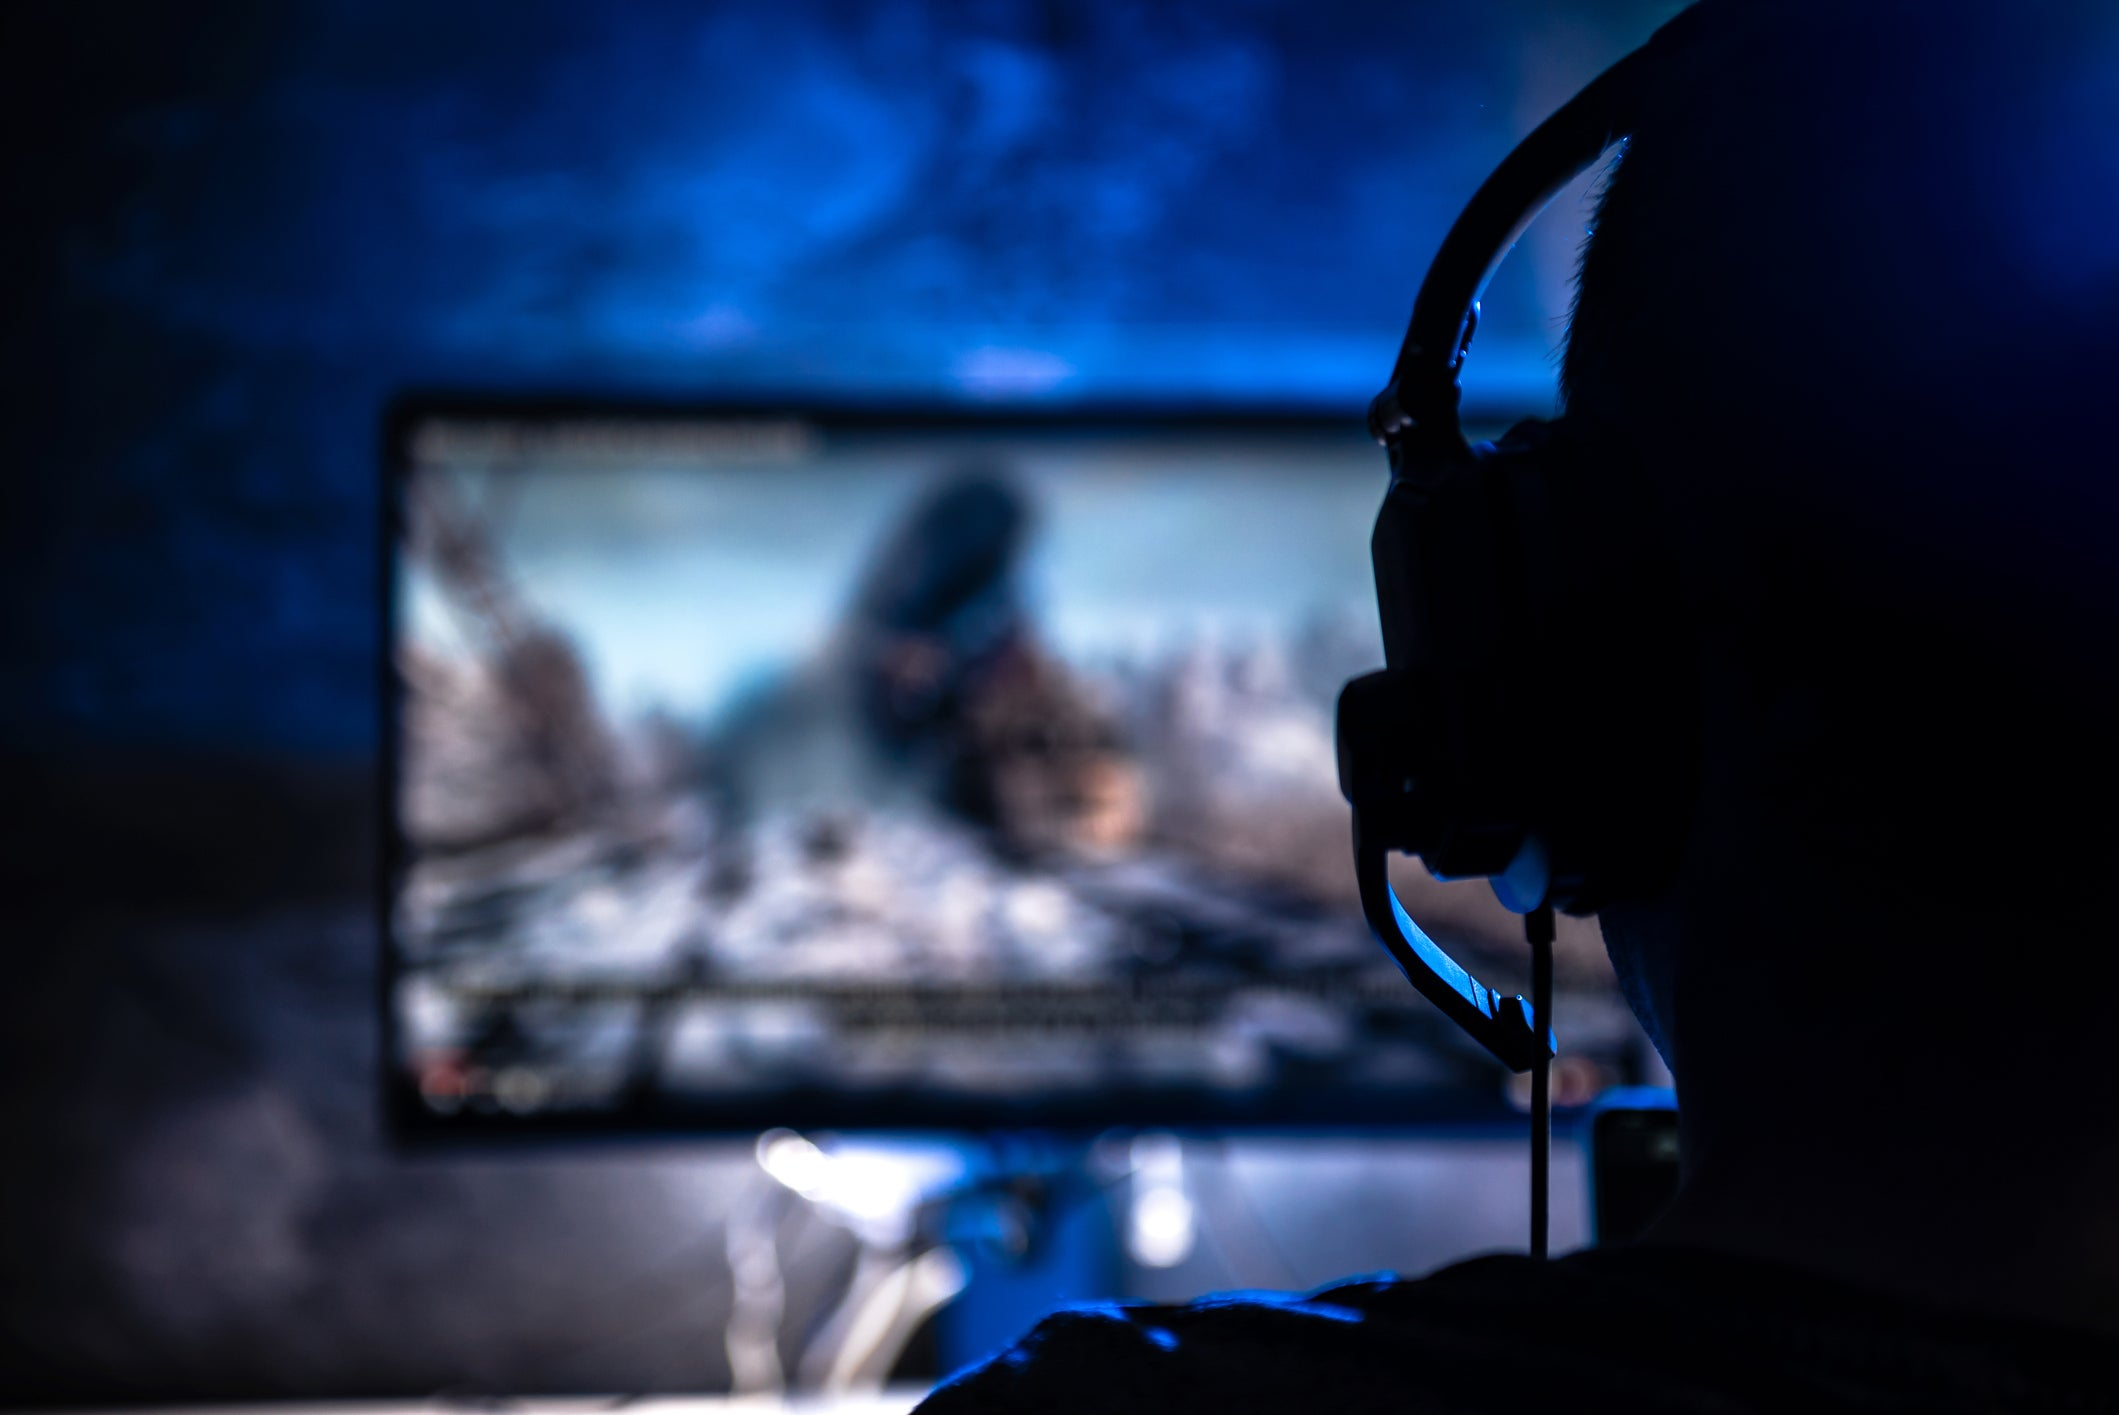 Activision Blizzard Has Few Bright Spots in First Quarter of 2019